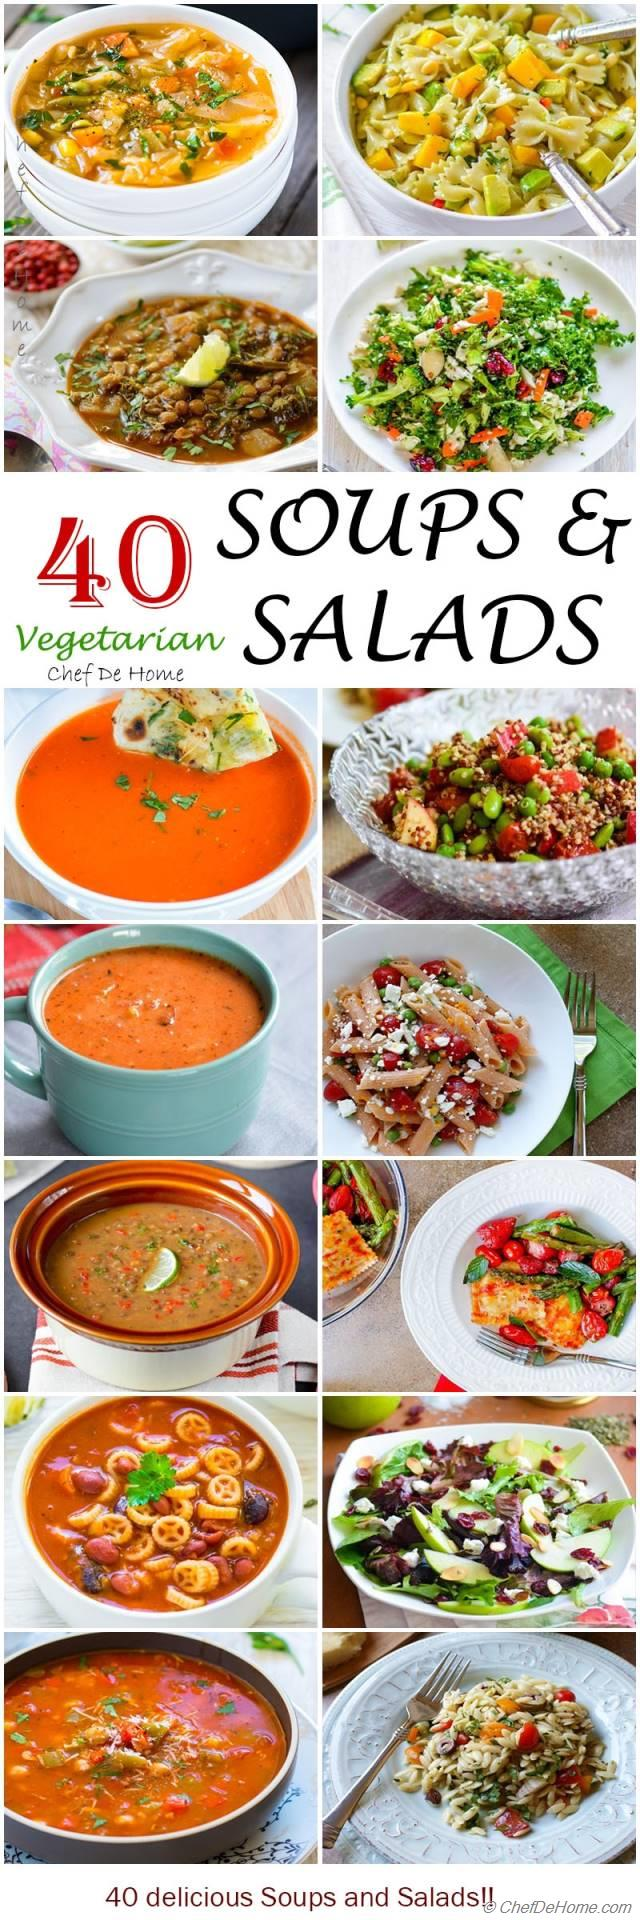 40 vegetarian soup and salad recipes recipe collection